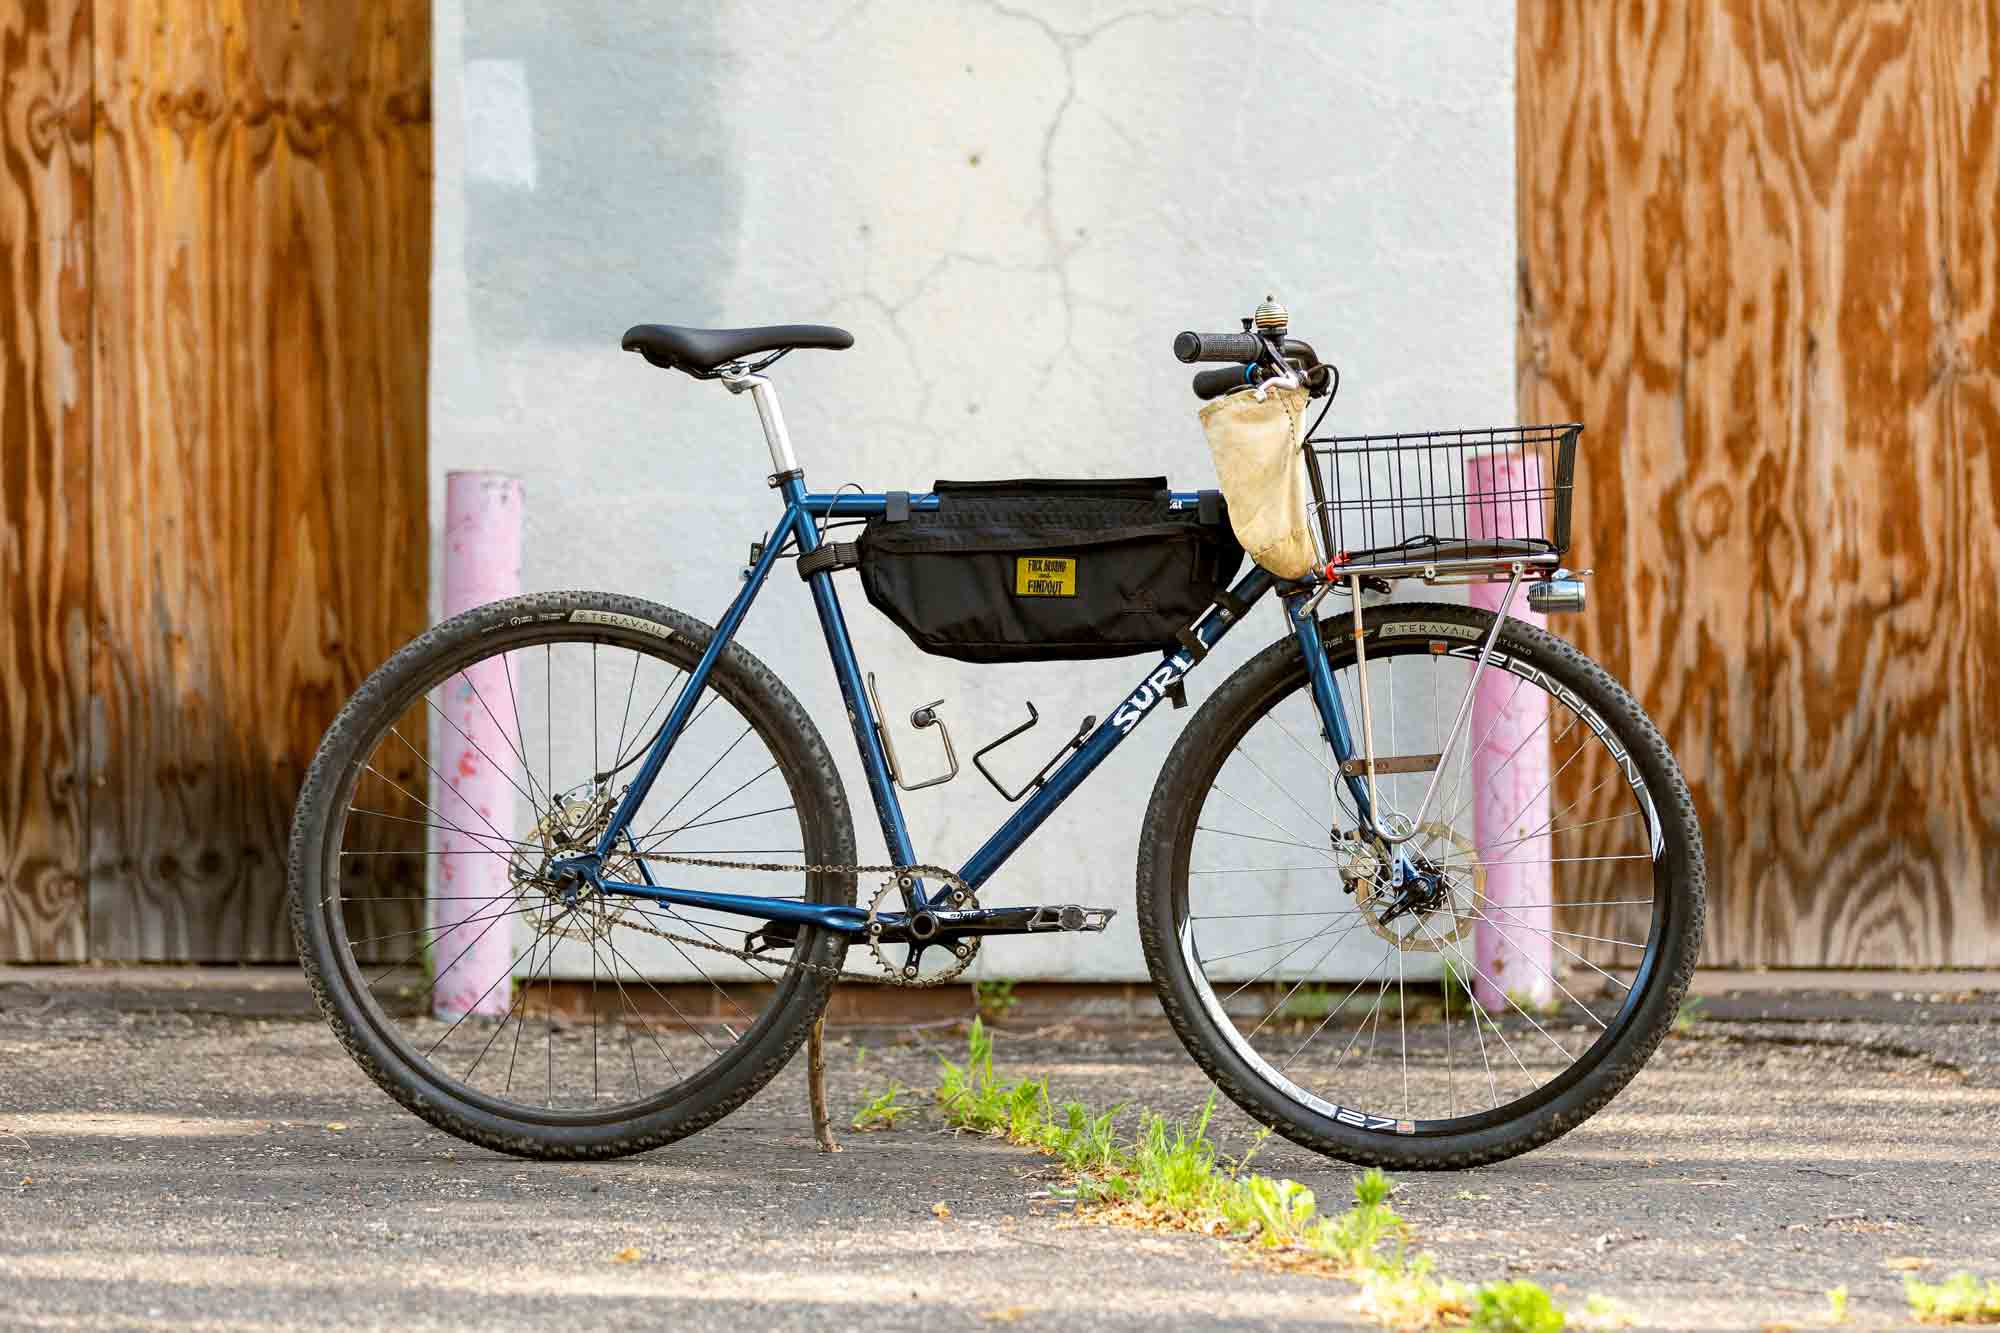 Make It Your Own - Surly Straggle Rat custom bike build using blue Surly Straggle frameset, single speed with front rack/ basket